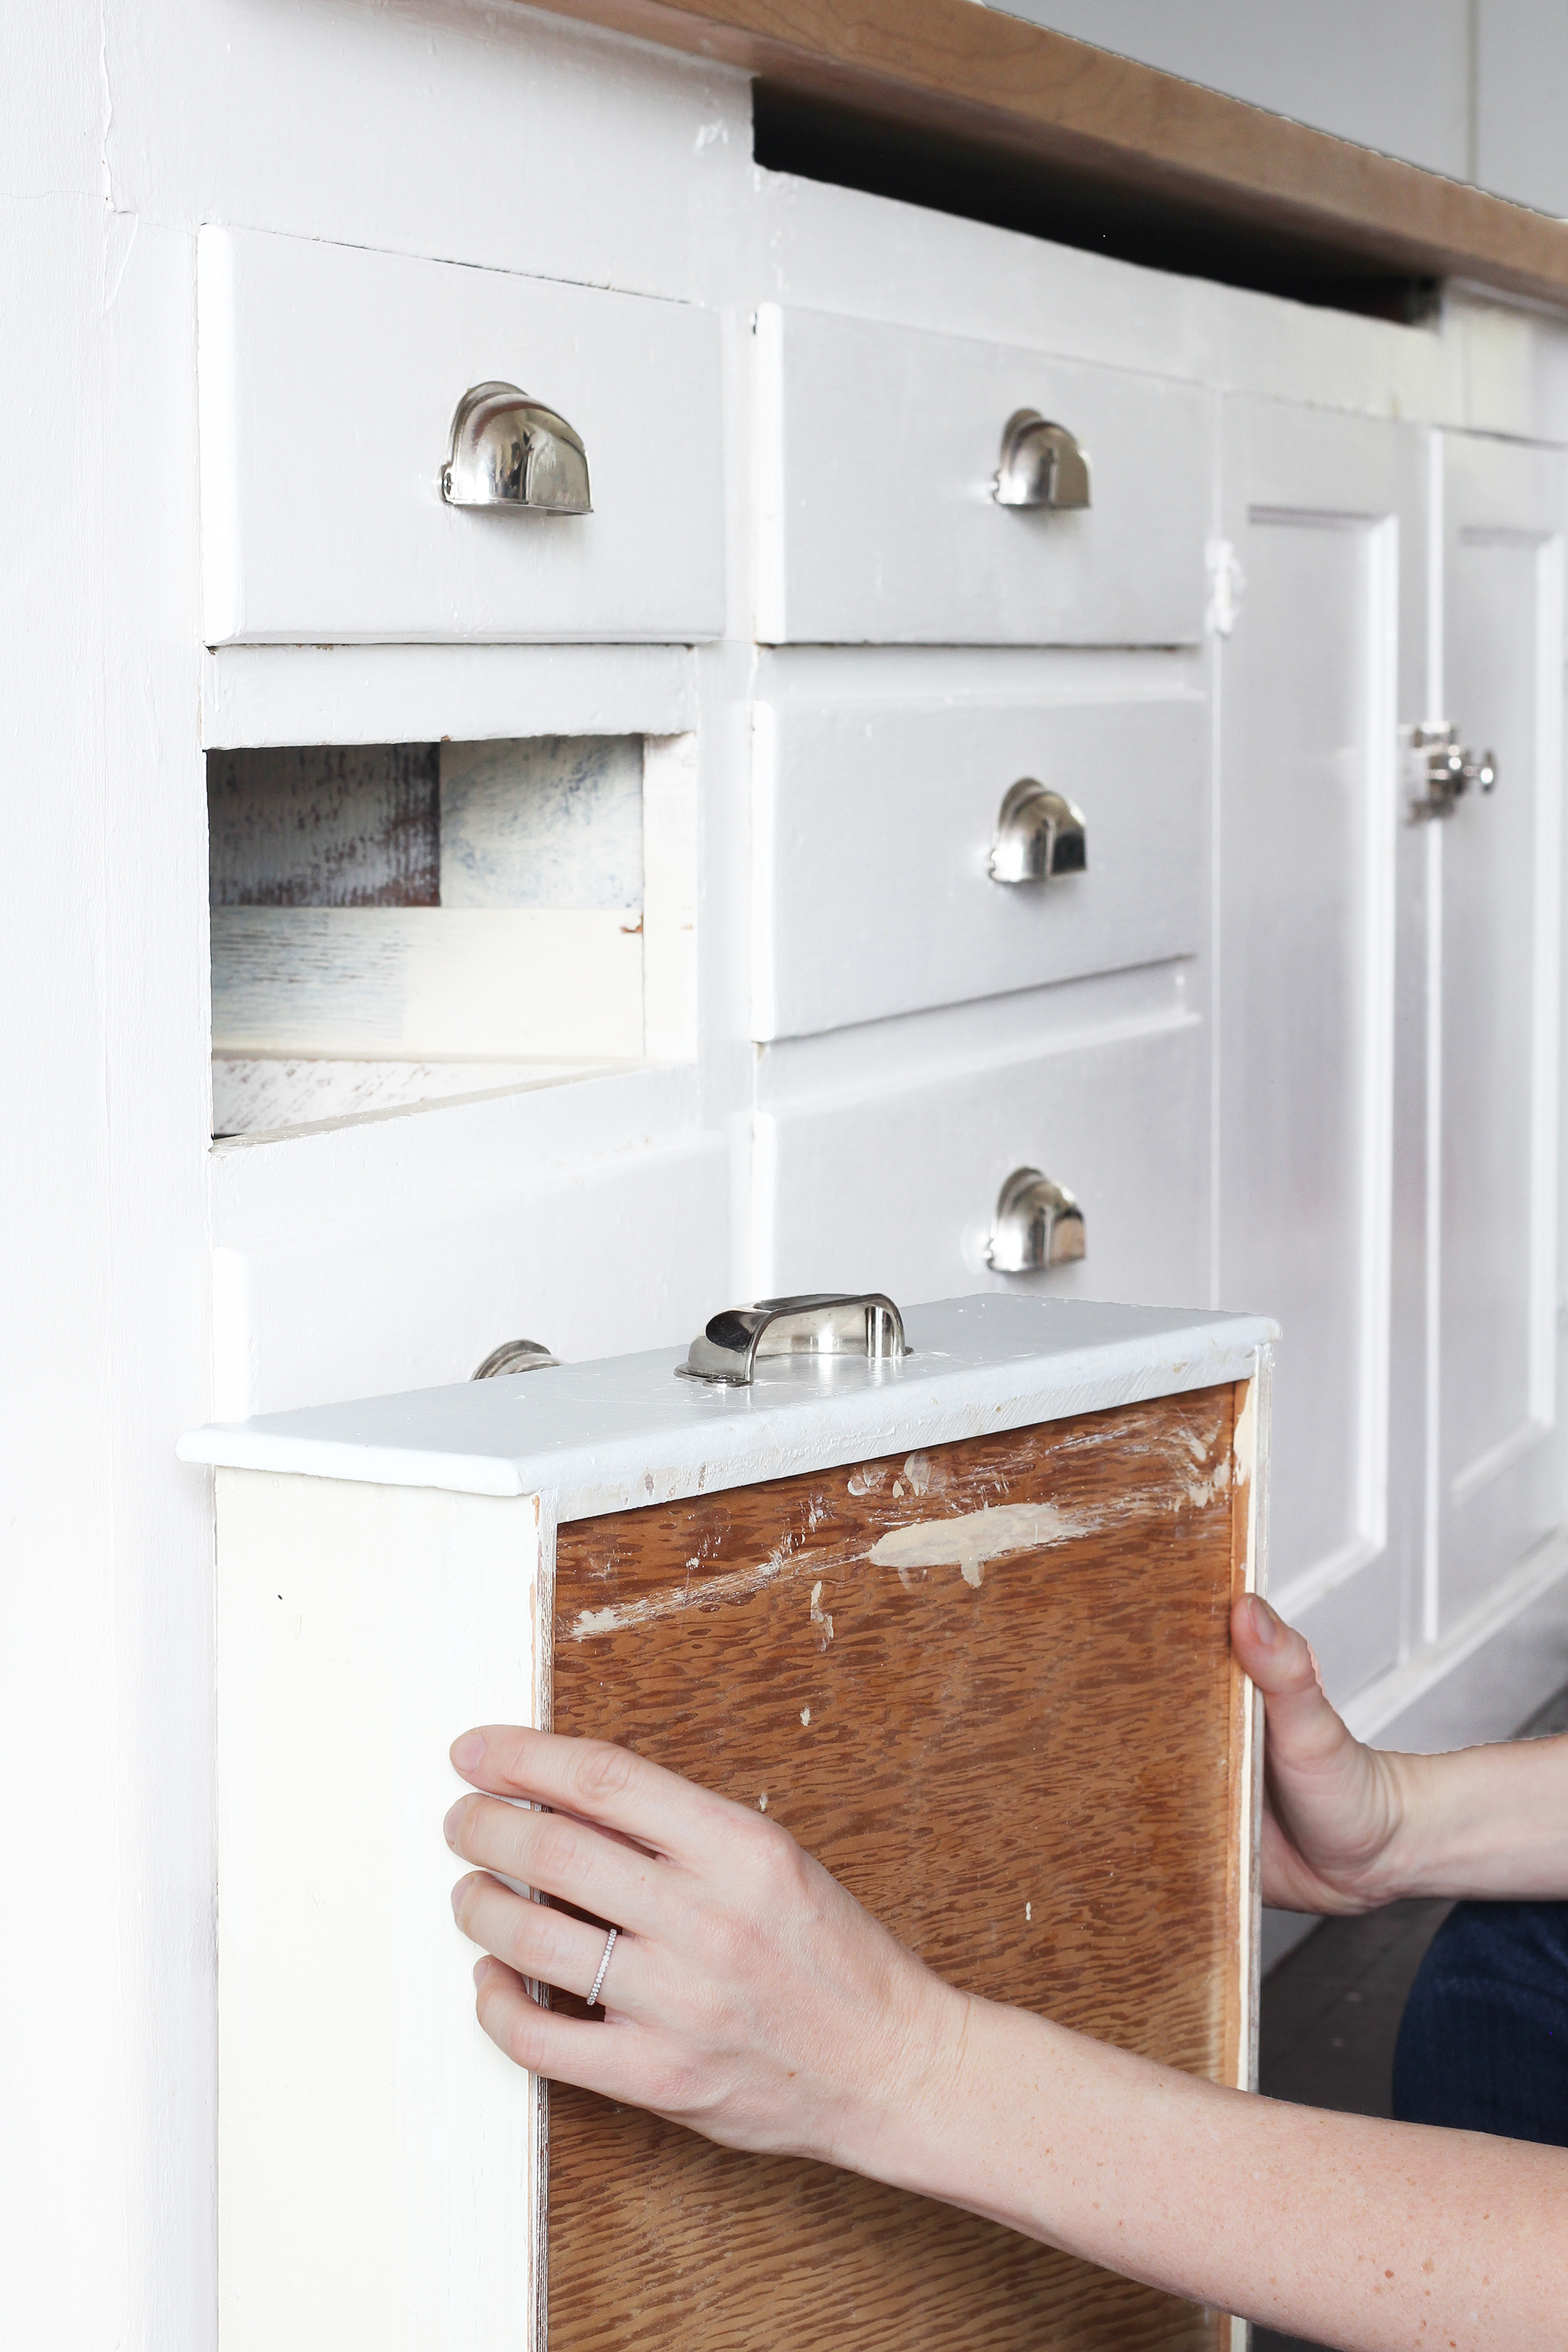 DIY // How To Make Old Wood Drawers Slide Easier — The ...